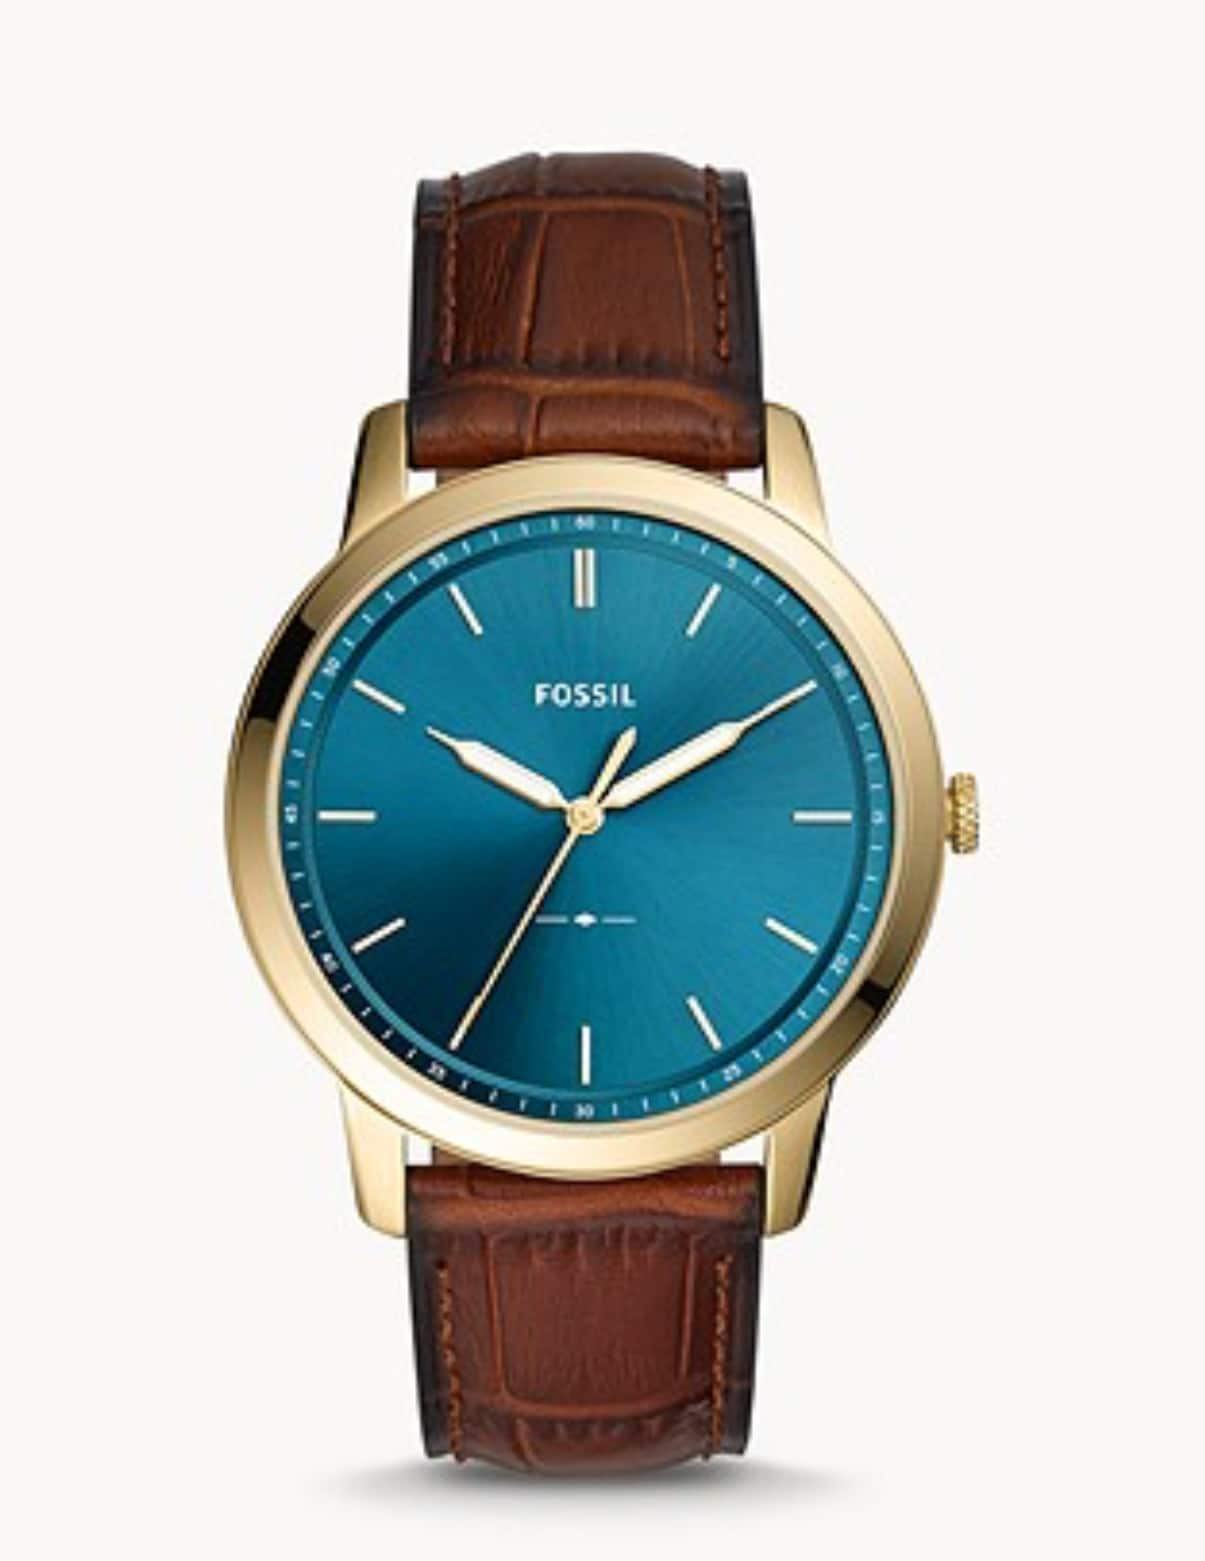 Fossil - The Minimalist Three-Hand Brown Leather Watch 40% off with promo code SNOWGOOD $49.98